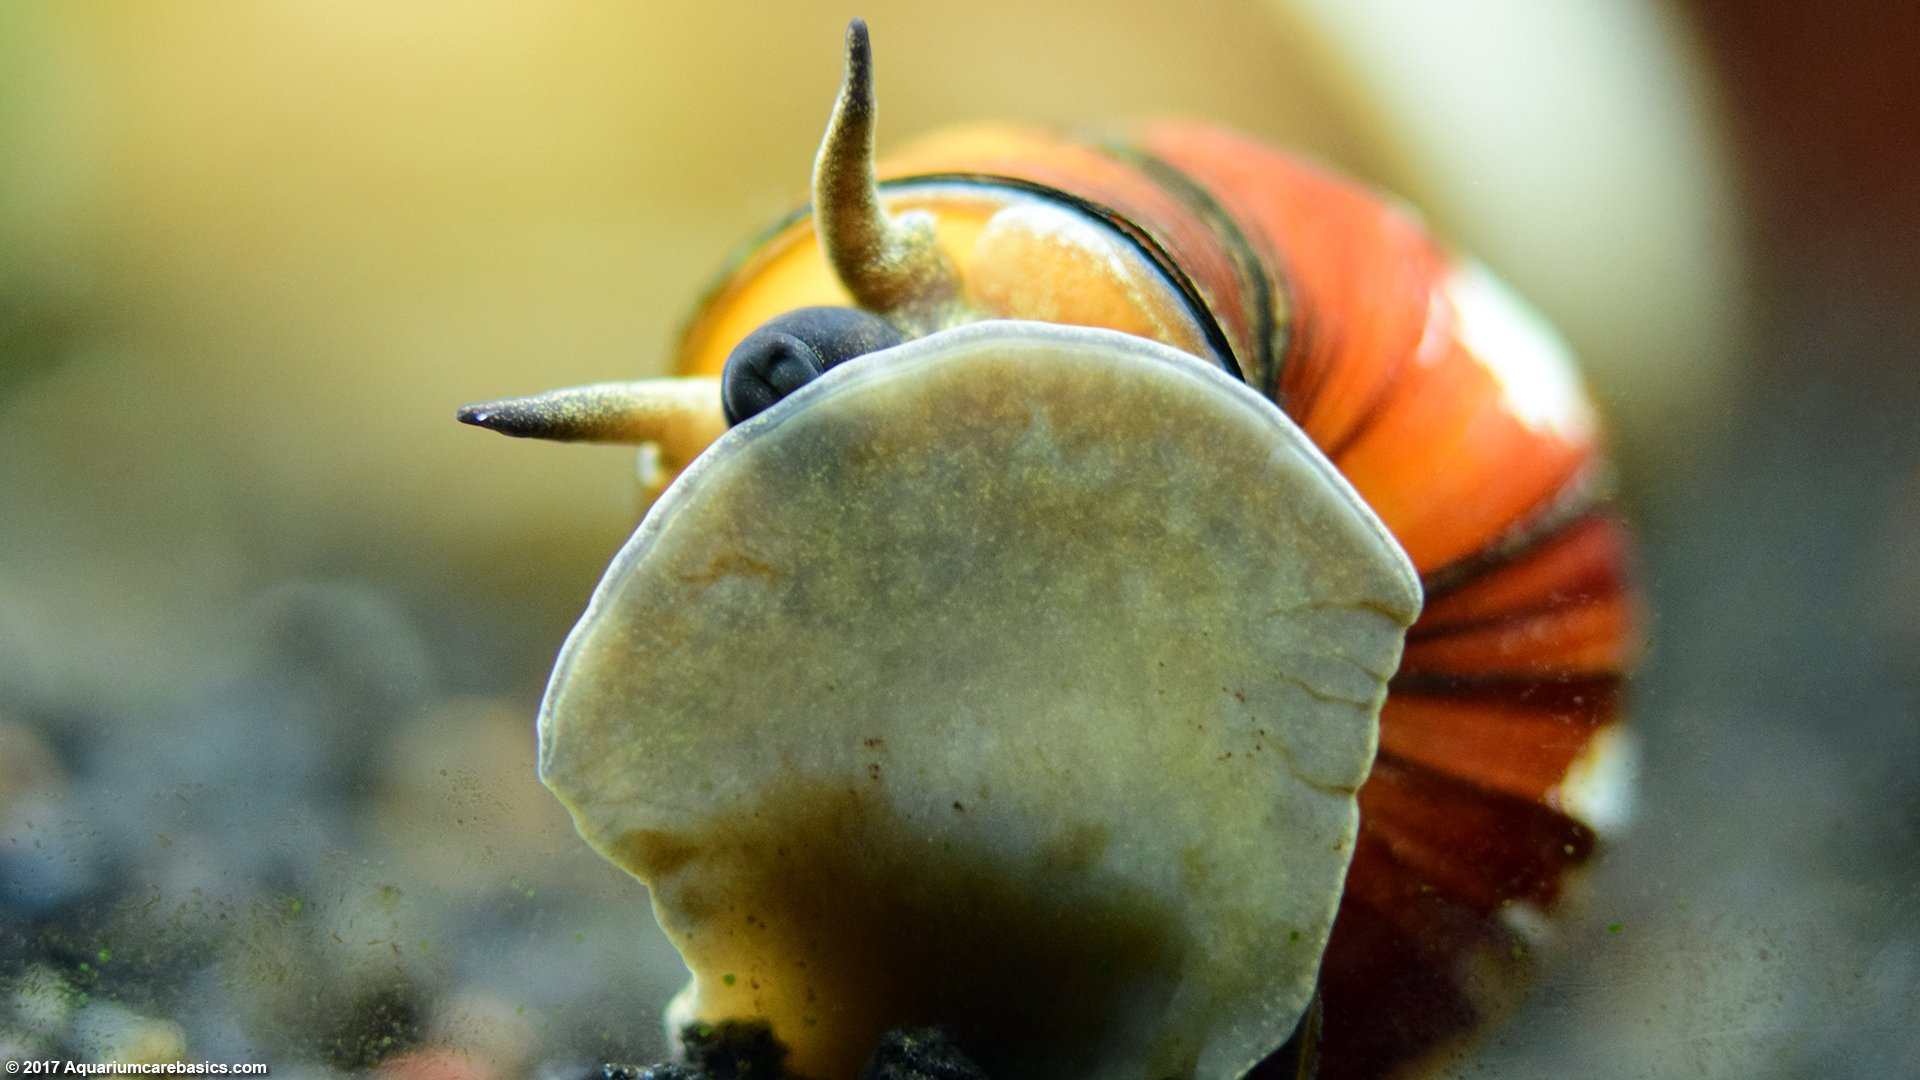 Japanese Trapdoor Snails: Care, Size, Diet & Reproduction - Video